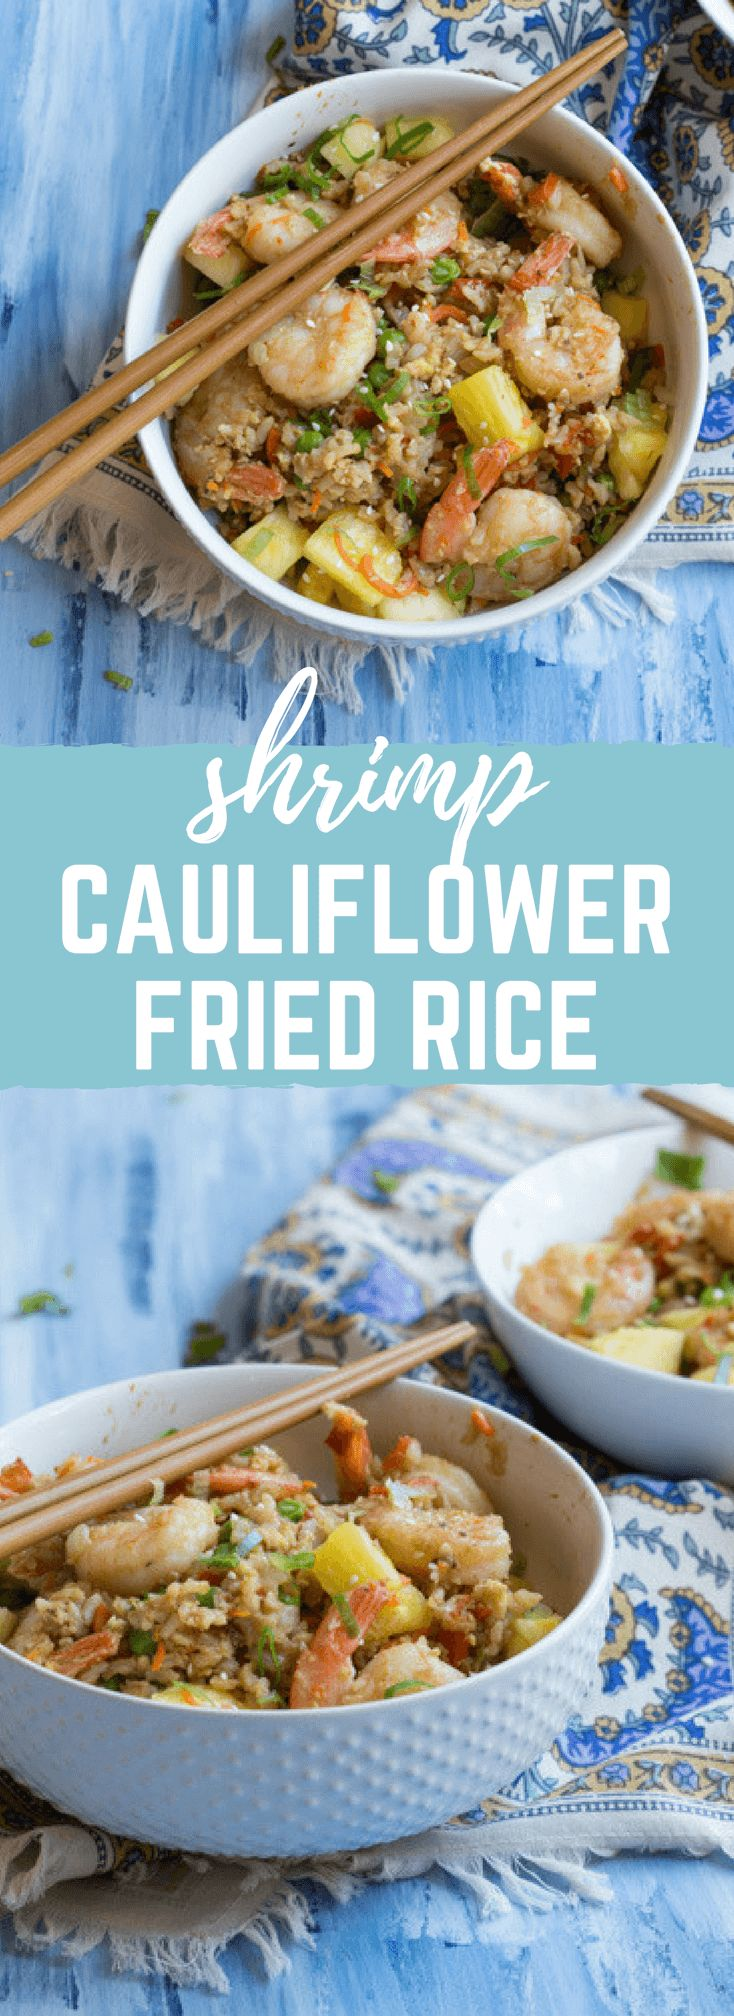 "This Shrimp Cauliflower Rried Rice is ready in just 25 minutes! This is the perfect dish for a quick, need it in a hurry Monday through Friday meal or just as a healthier alternative to the standard cozy ""take out and a movie"" meal."